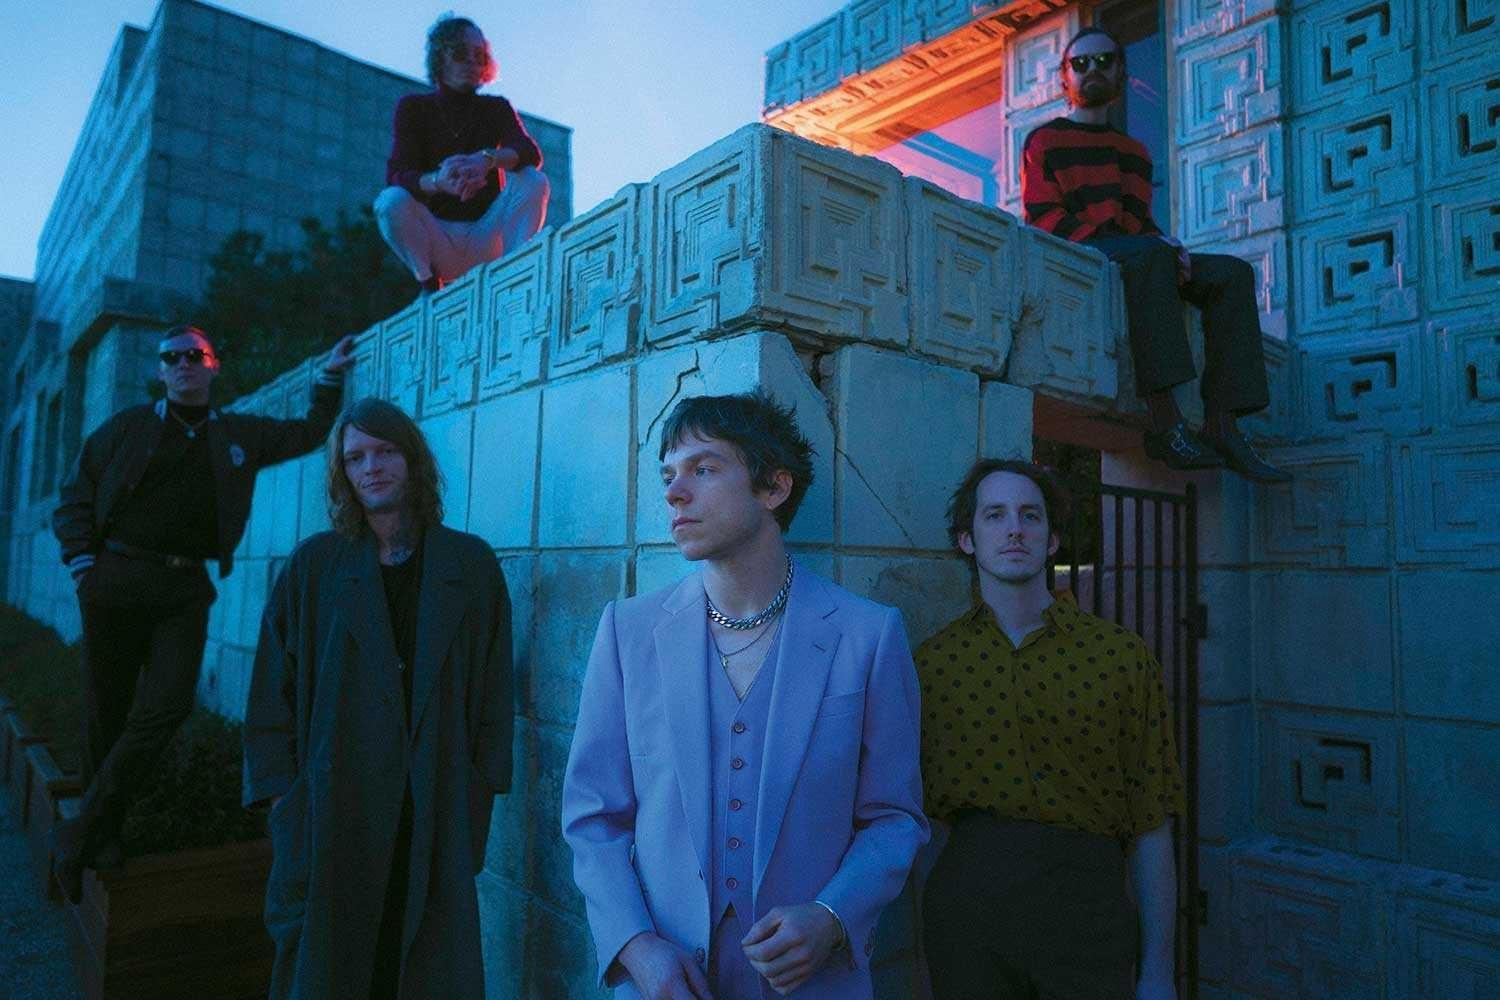 Cage the Elephant have cancelled their June UK and European shows due to injury